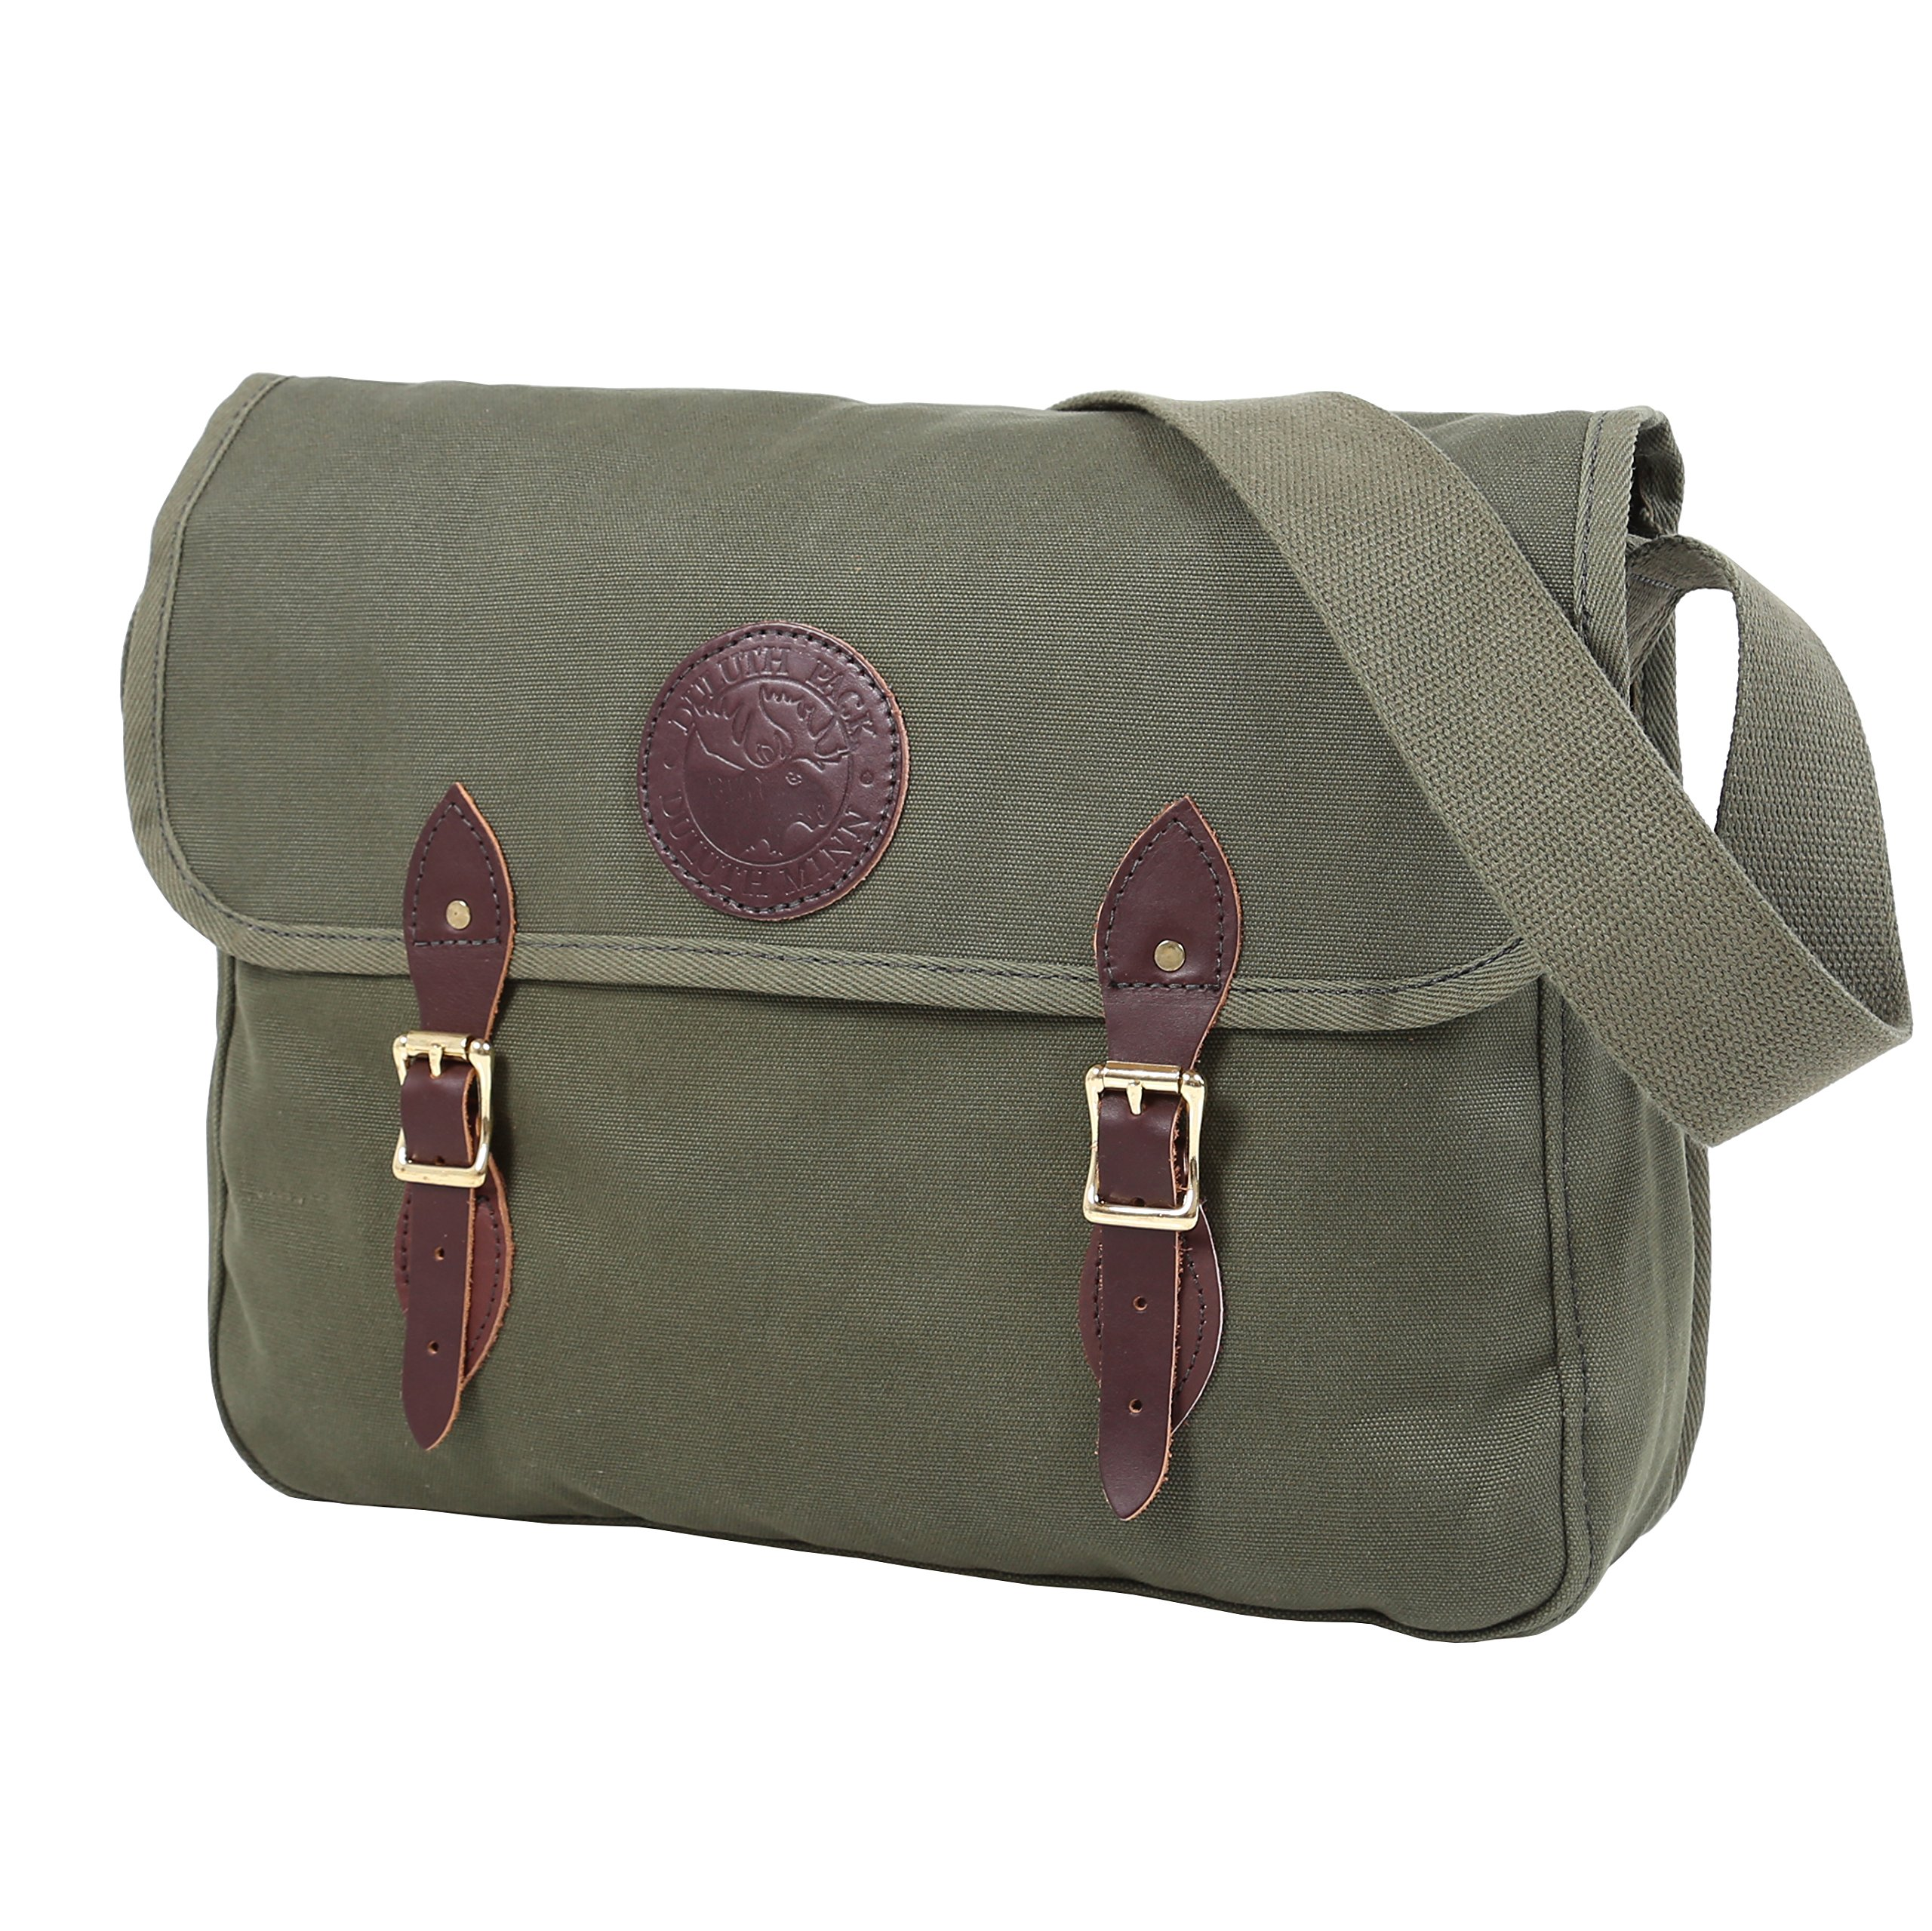 Duluth Pack Standard Book Bag, Olive Drab, 11 x 16 x 4-Inch